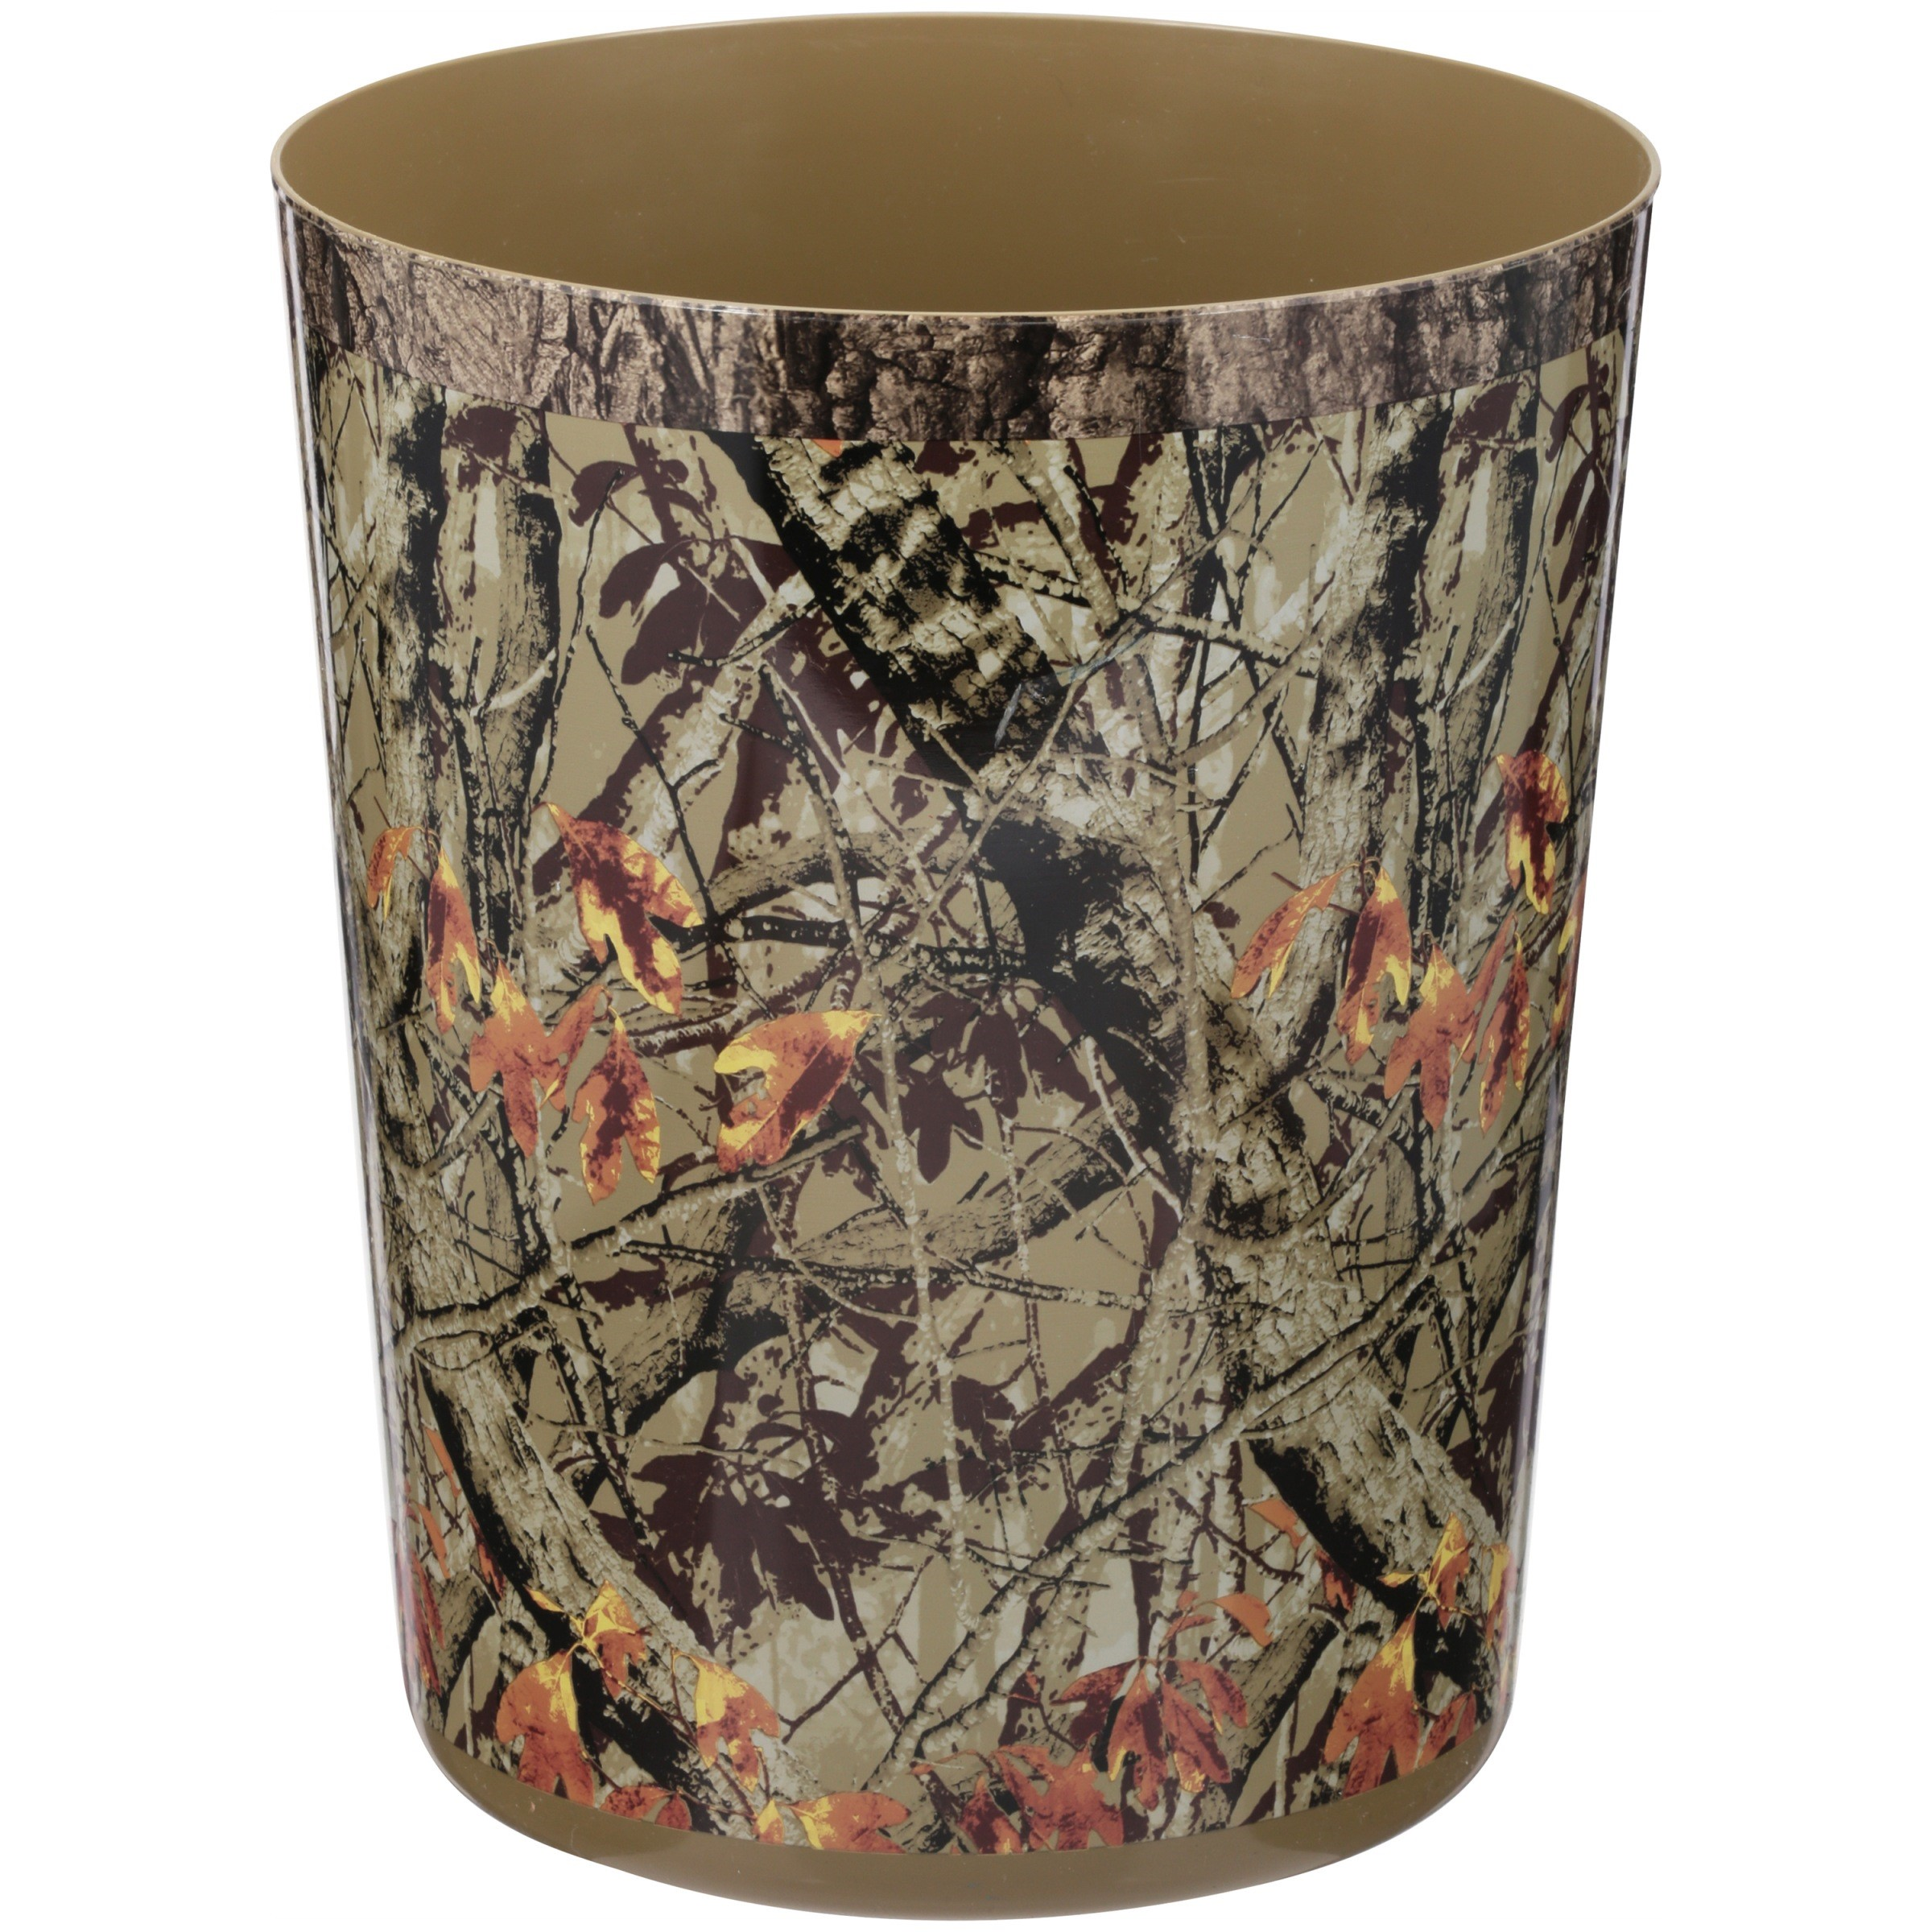 Mainstays Ozark Trail 1.5 Gallon Camo Waste Basket, Green and Brown Camouflage